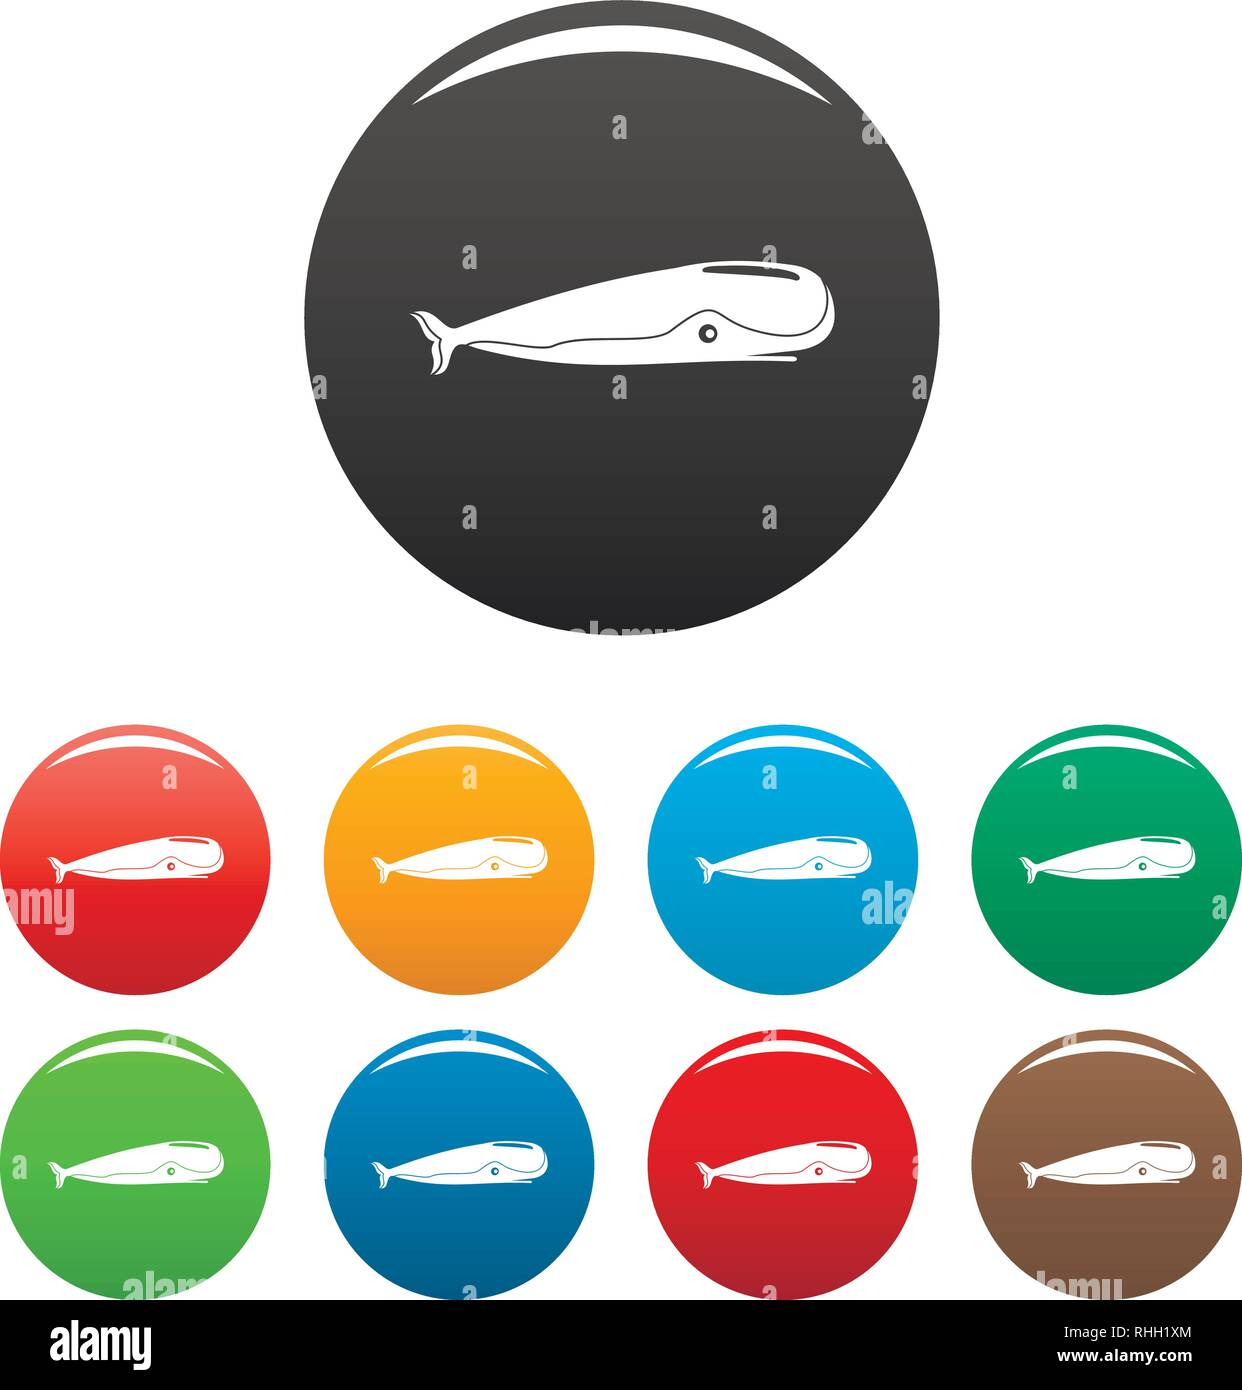 Sperm whale icons set 9 color vector isolated on white for any design - Stock Image